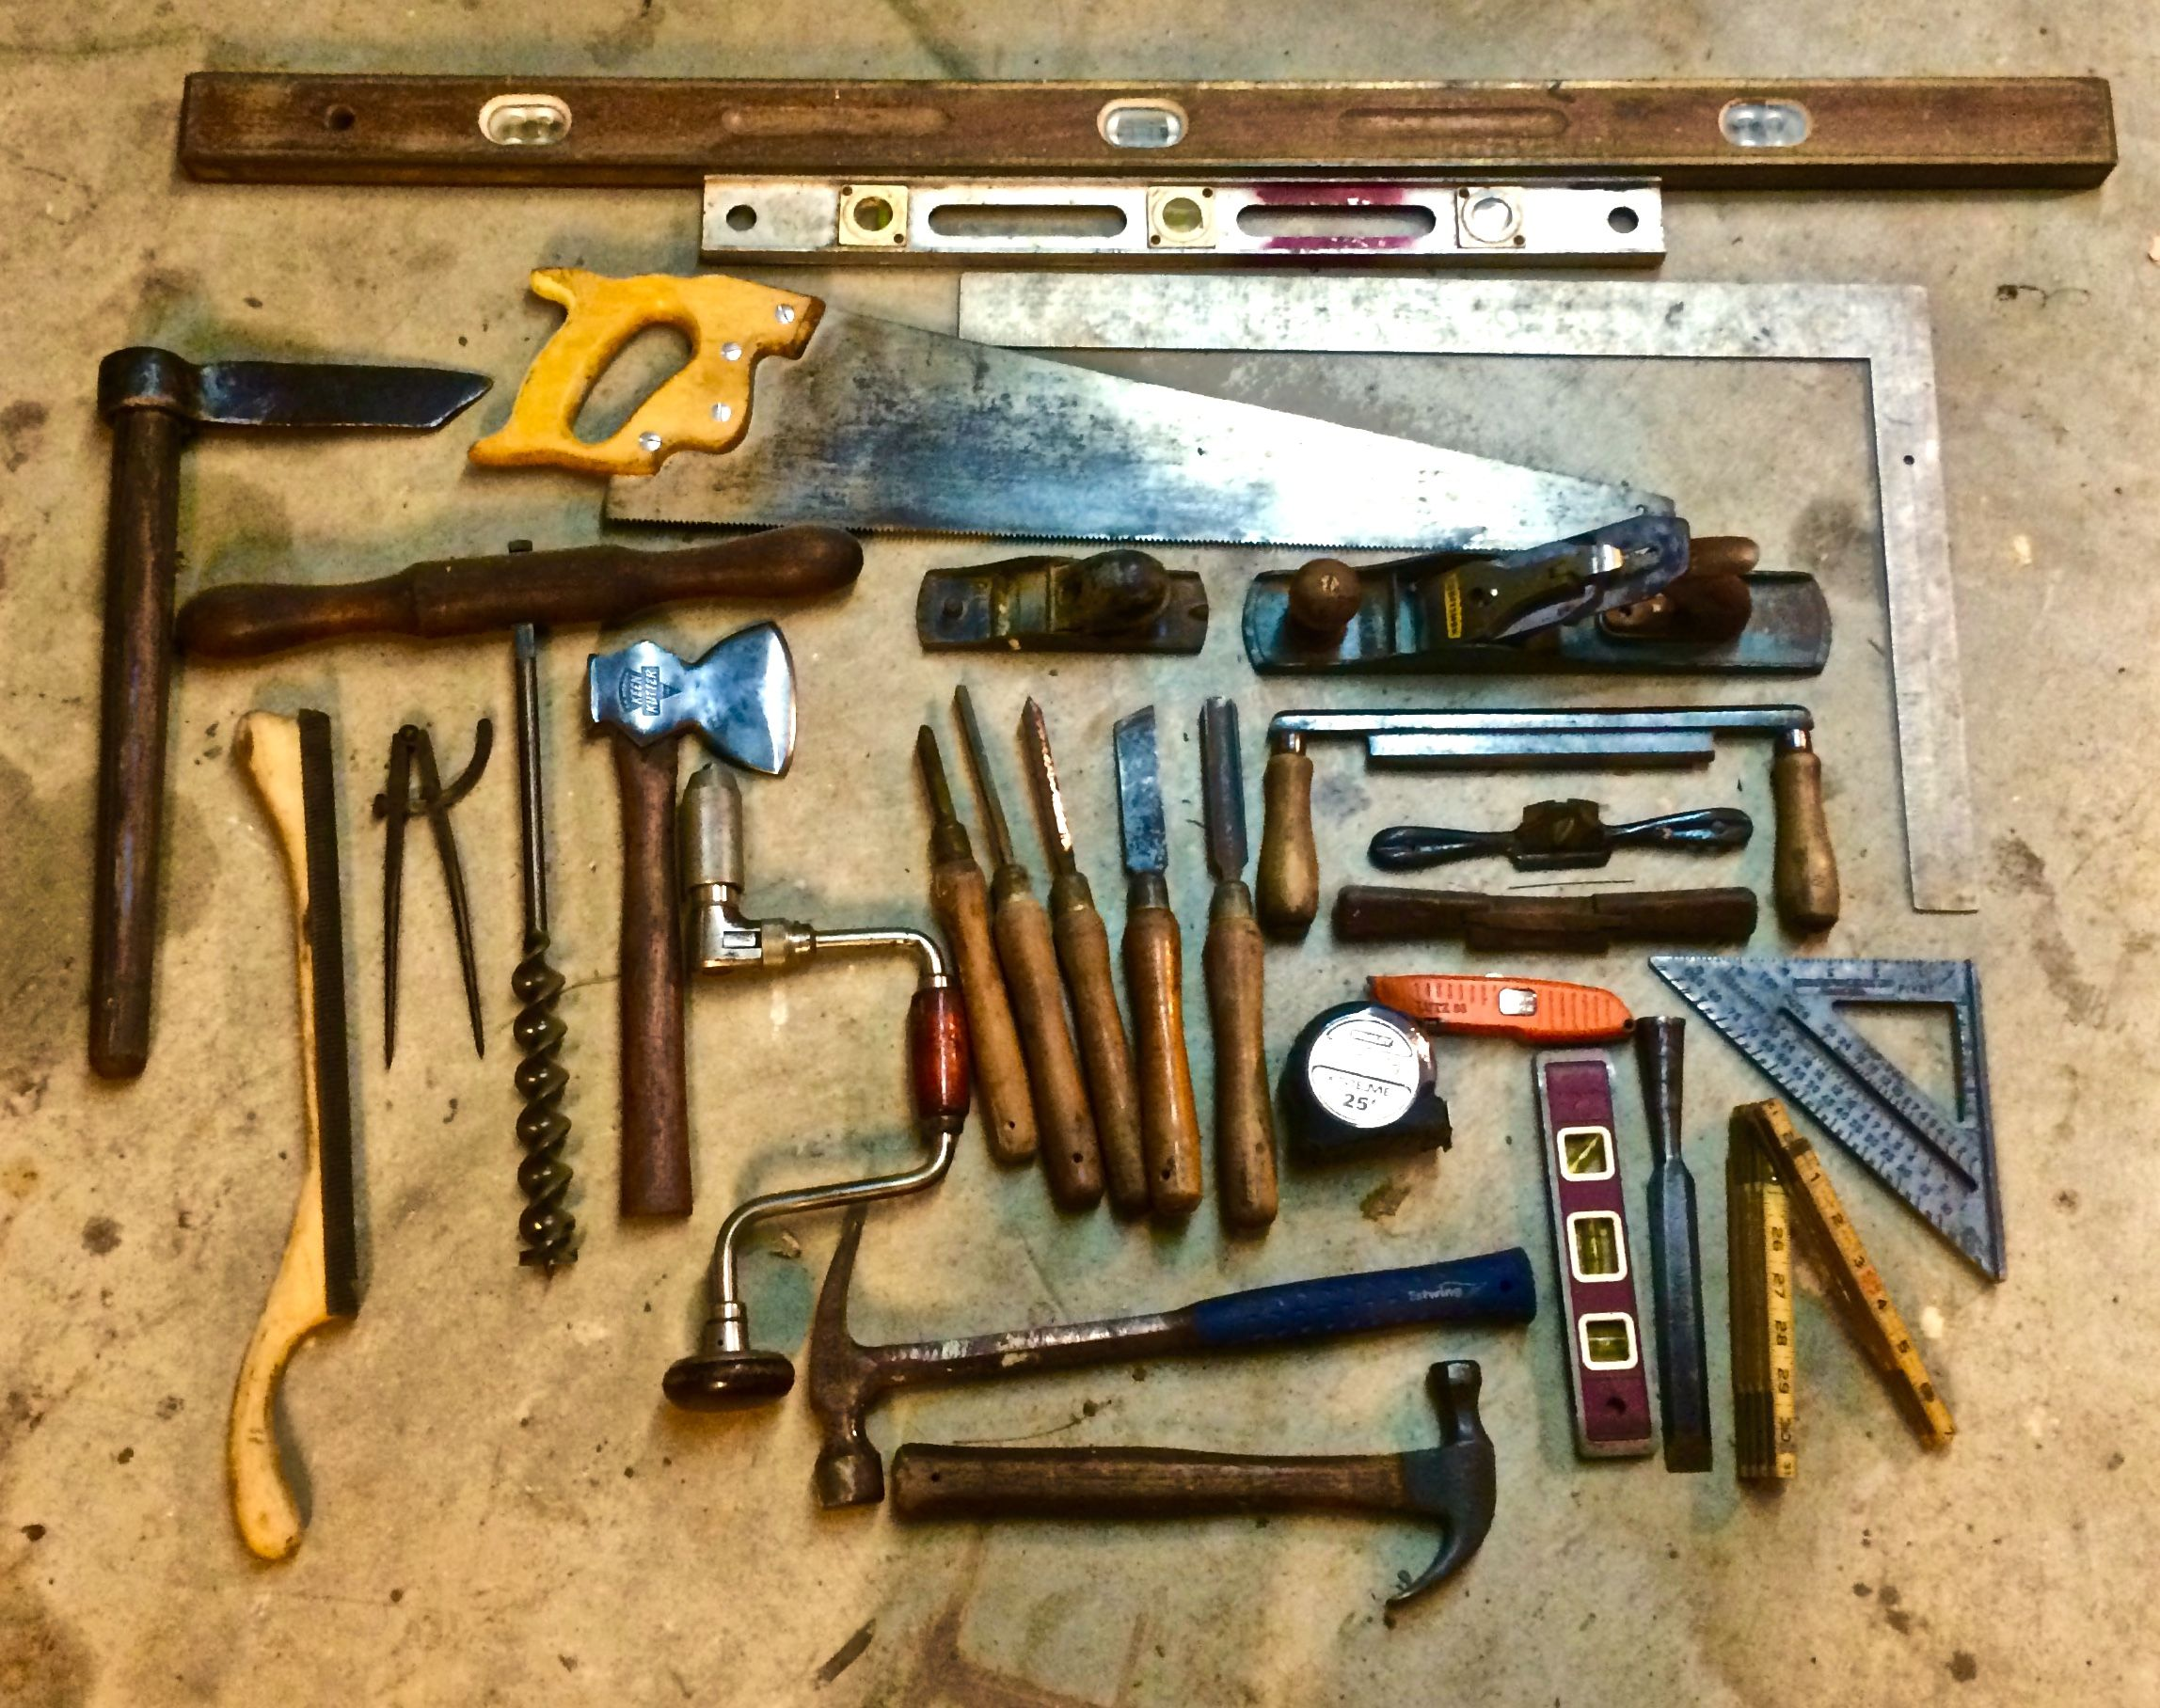 20 Essential Woodworking Hand Tools List All Woodworkers Must Have